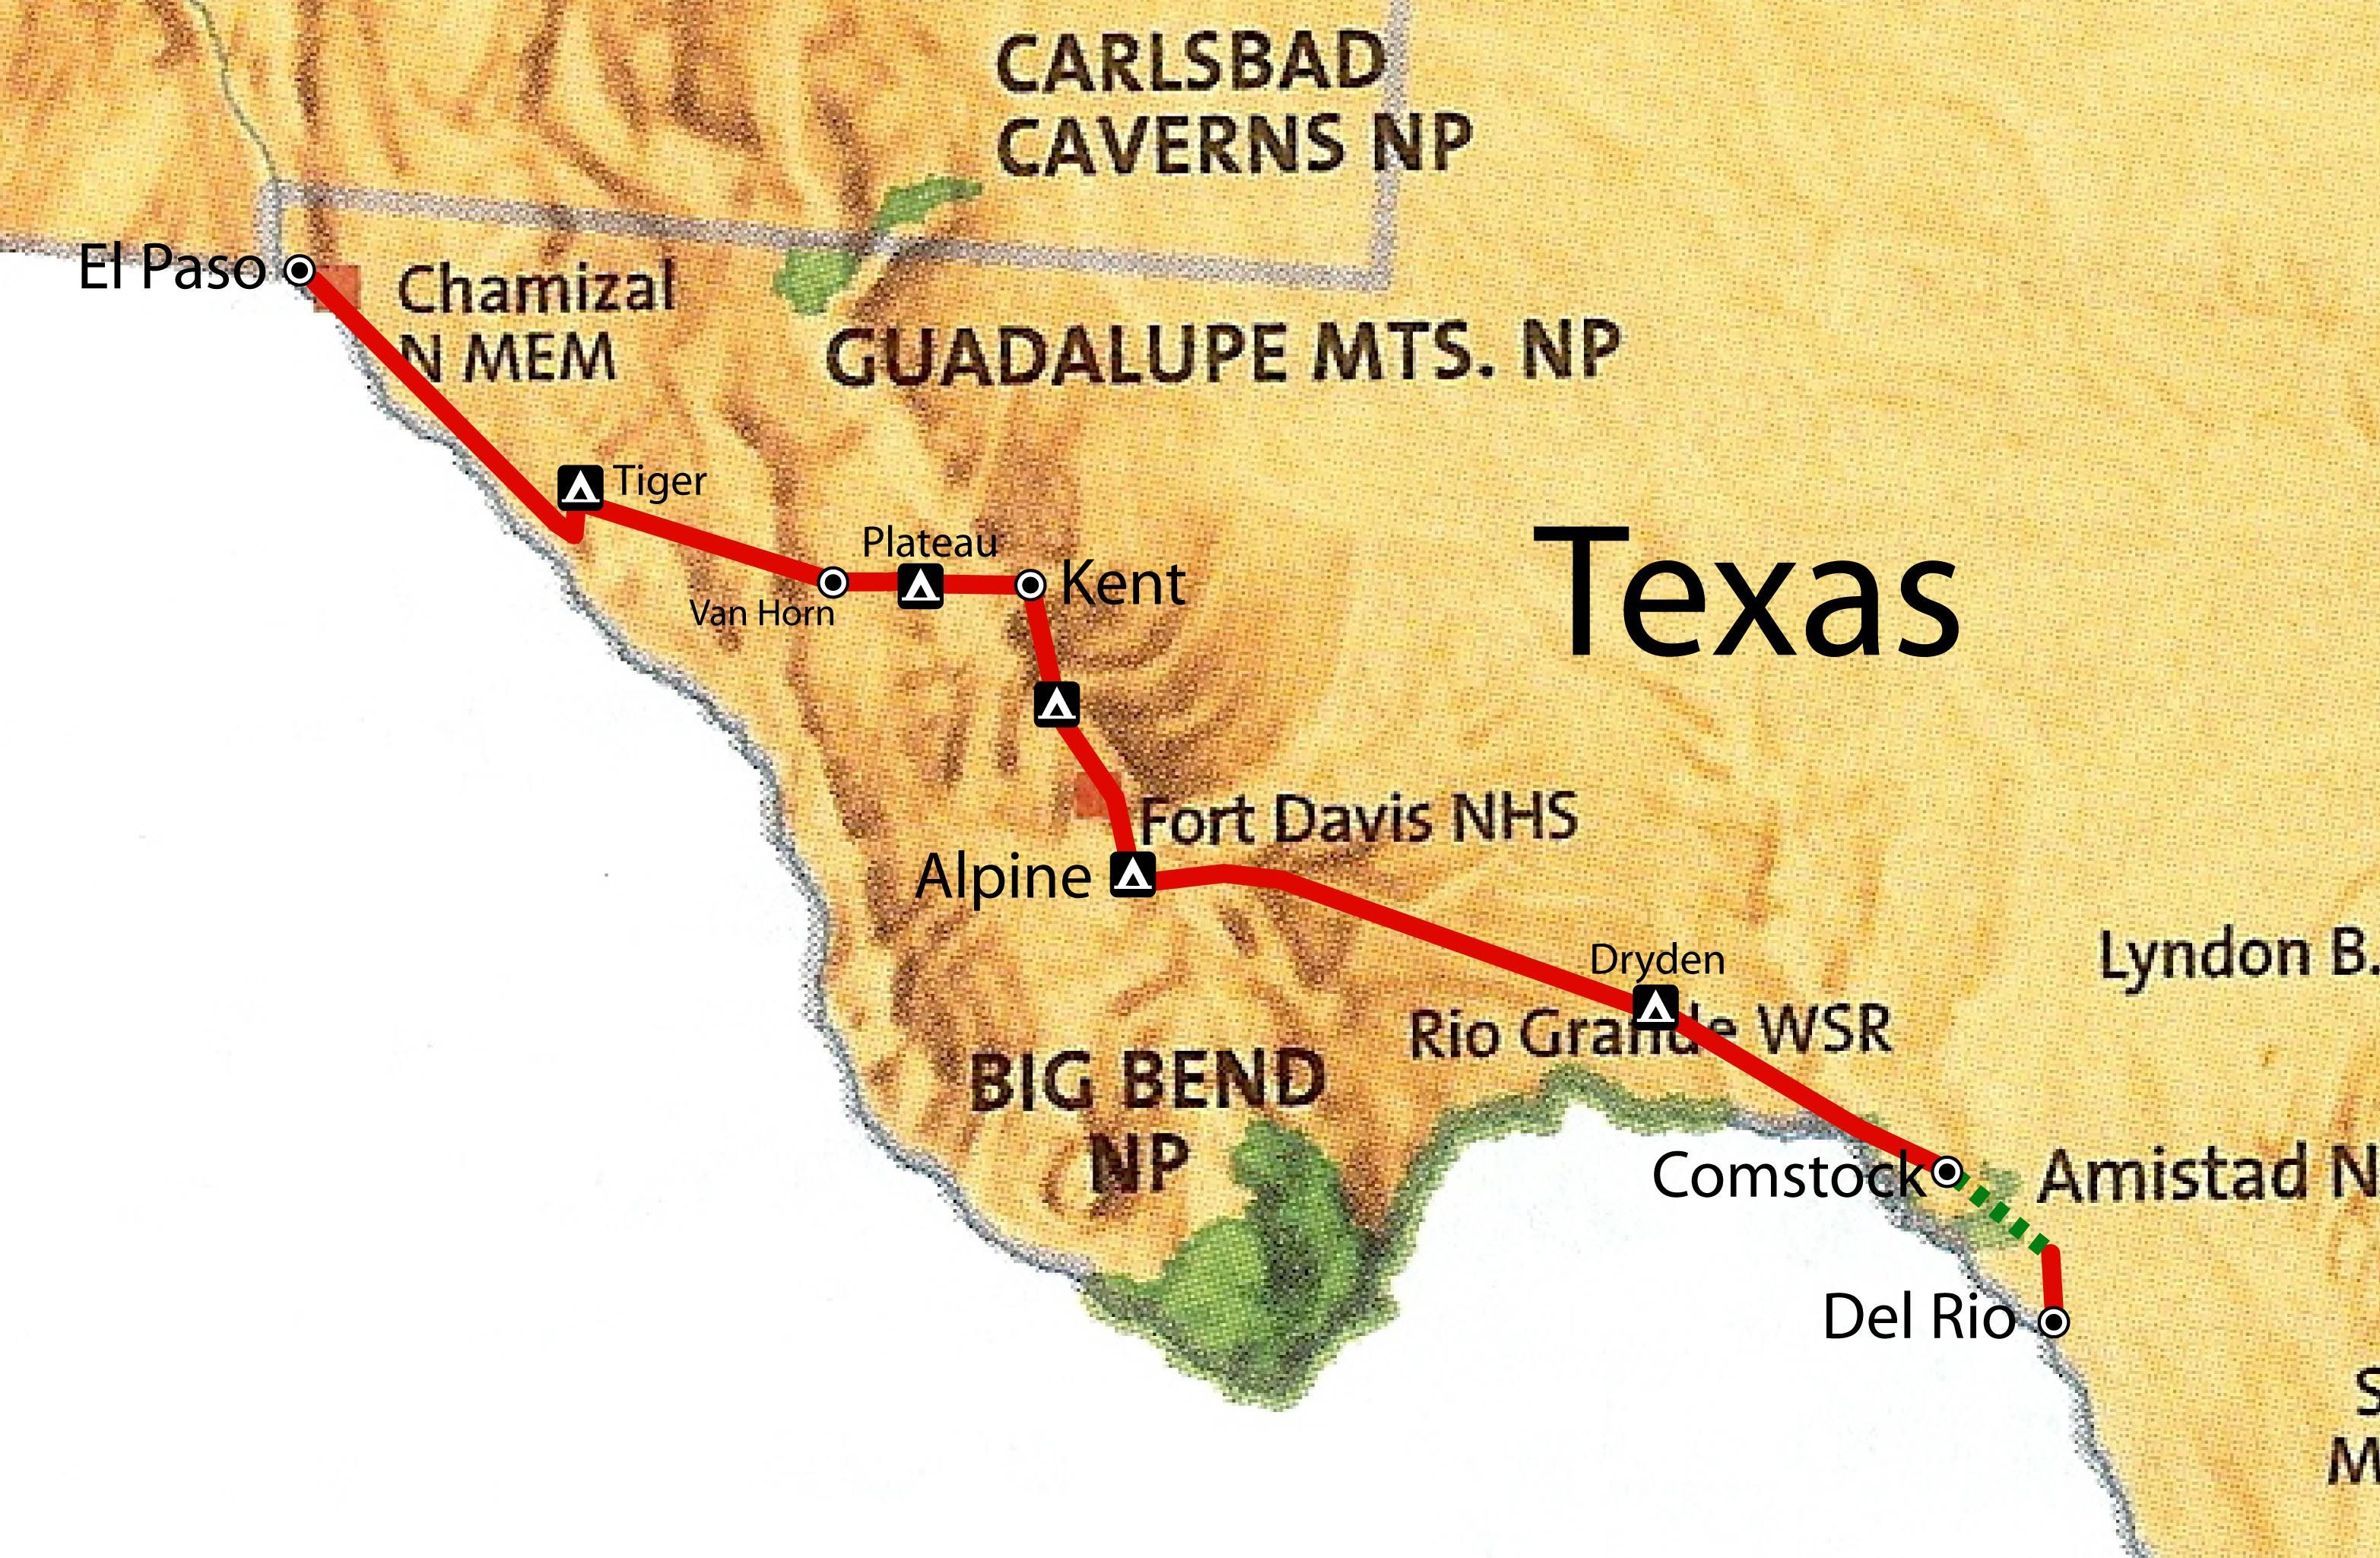 West Texas Map | West Texas | Pinterest | West Texas, Texas - Alpine Texas Map